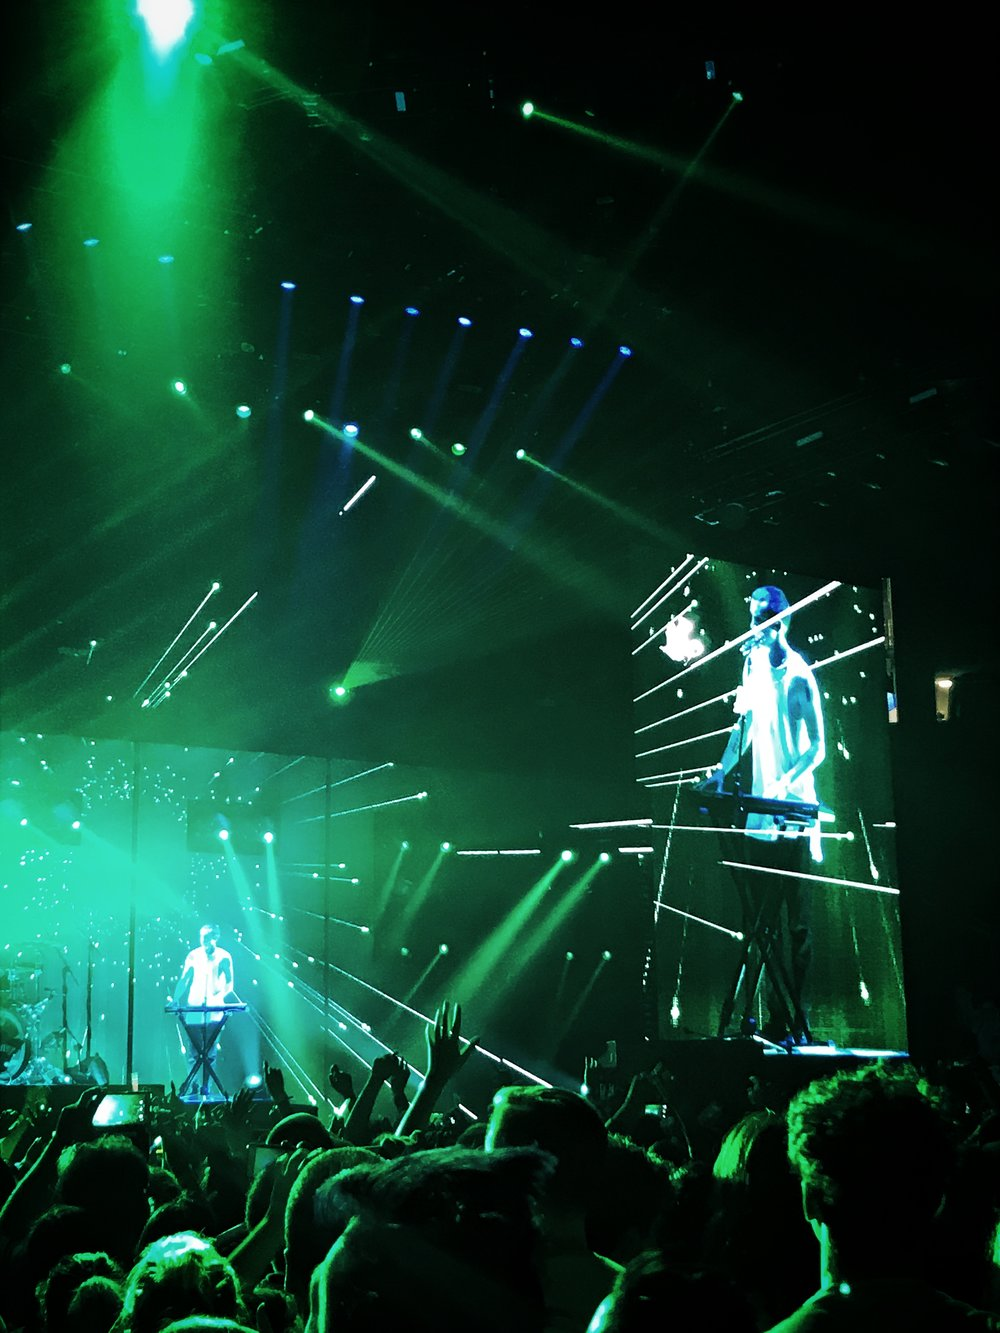 Twenty One Pilots as they begin to close a fantastic performance of their self-titled tour at Golden 1 Center in Sacramento, California.